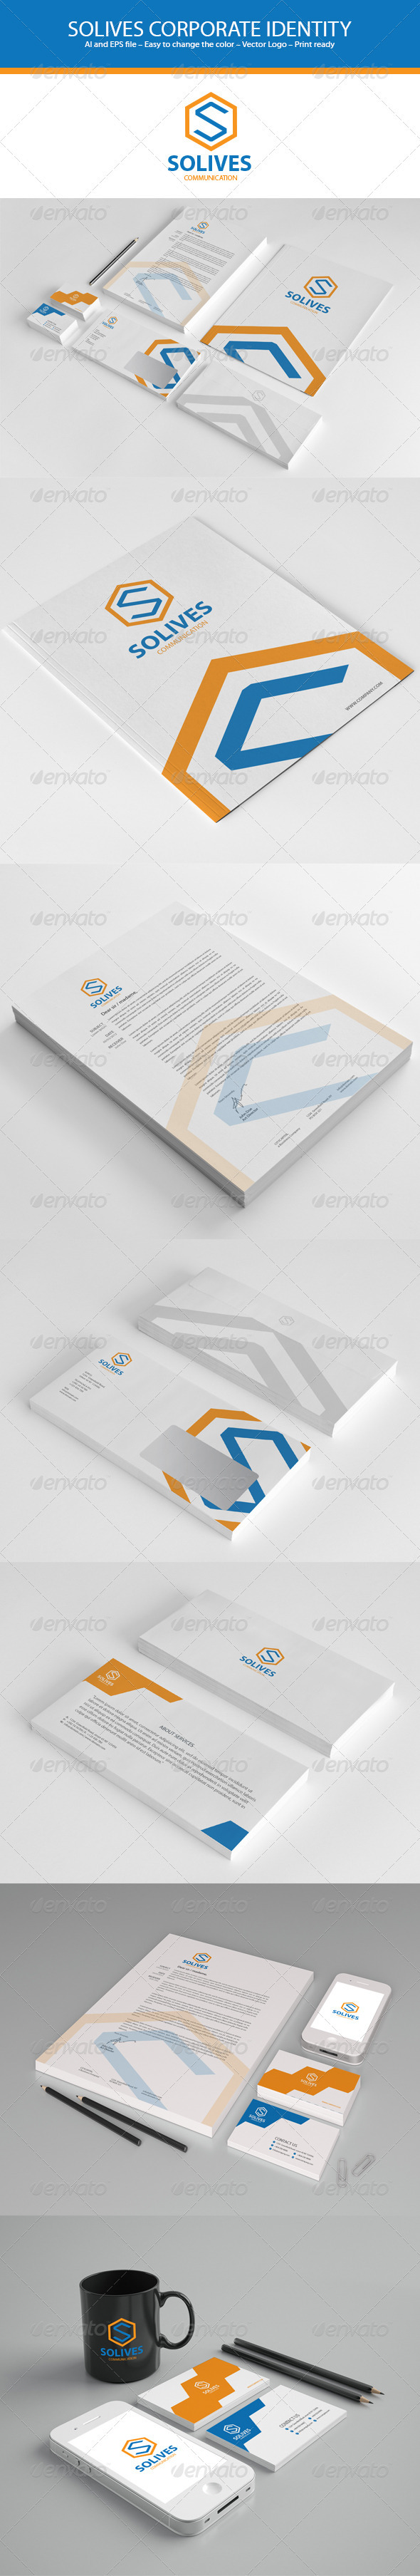 GraphicRiver Solives Communication Stationery 3466004